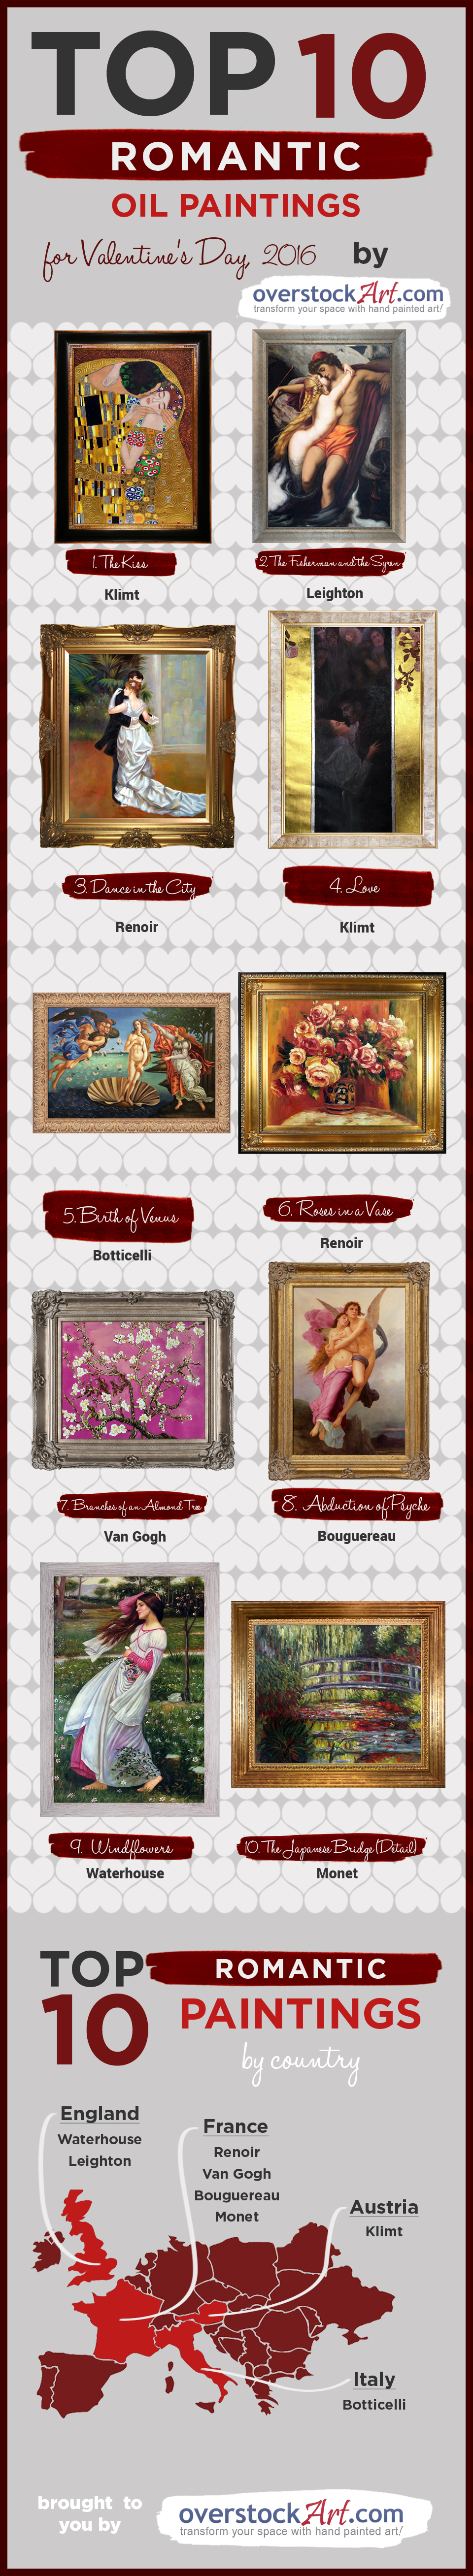 Top 10 Art for Valentine's Day 2016 List